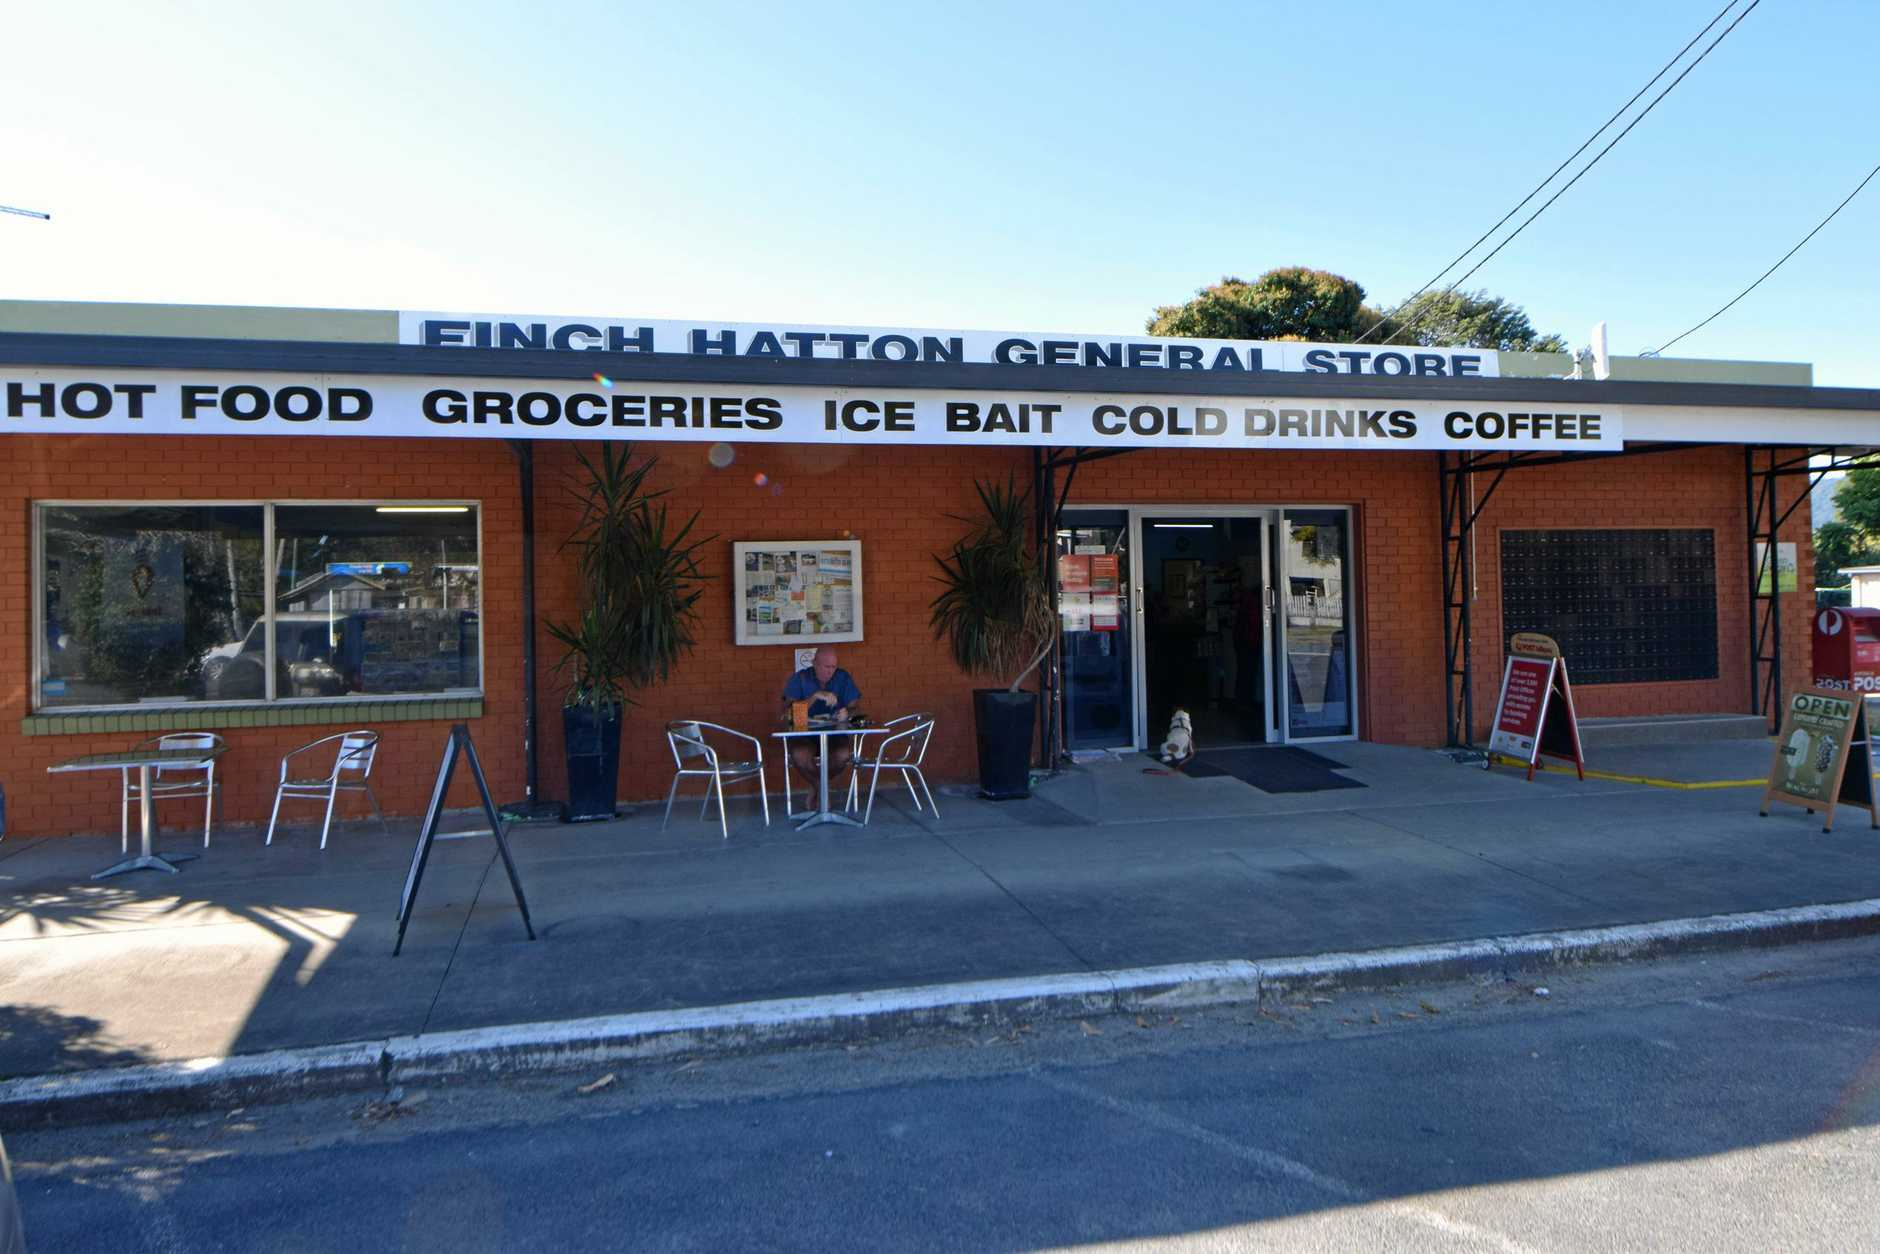 Finch Hatton General Store in the Pioneer Valley.